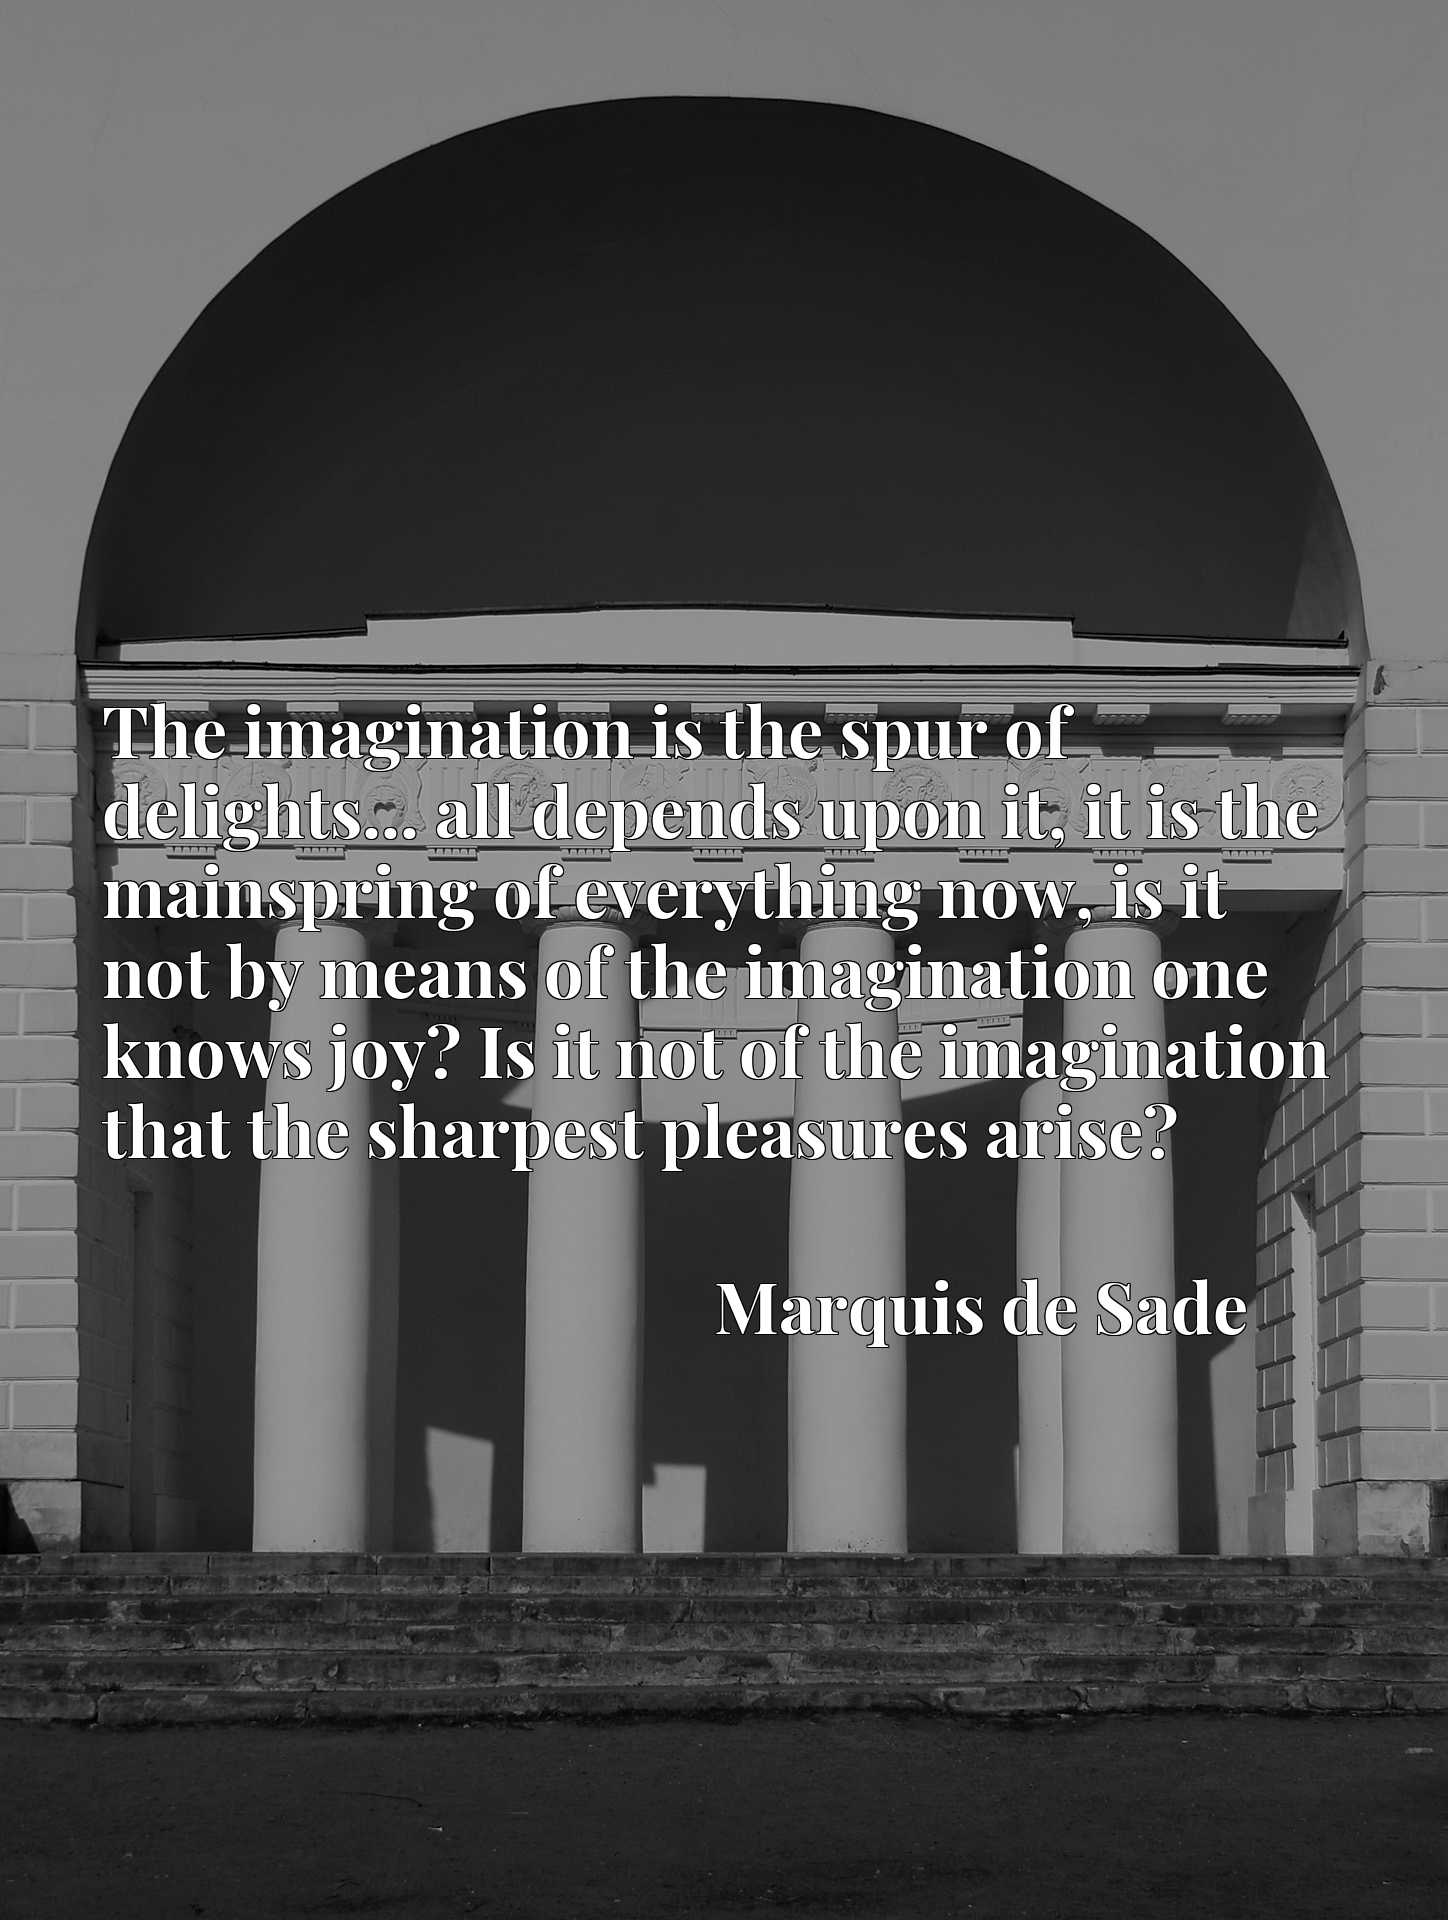 The imagination is the spur of delights... all depends upon it, it is the mainspring of everything now, is it not by means of the imagination one knows joy? Is it not of the imagination that the sharpest pleasures arise?